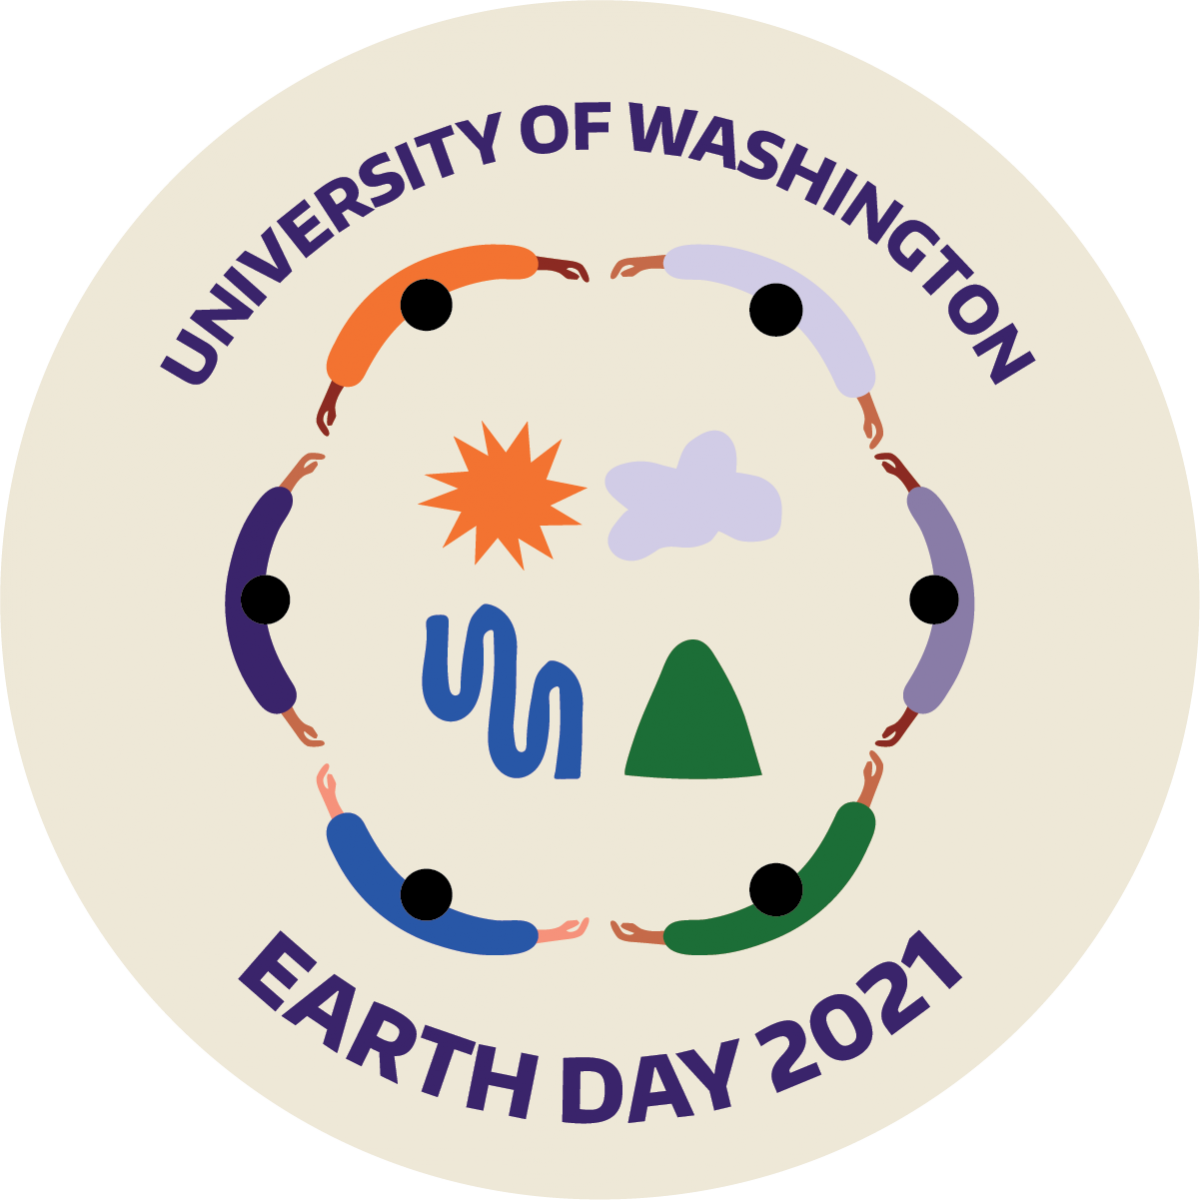 2021 UW Earth Day